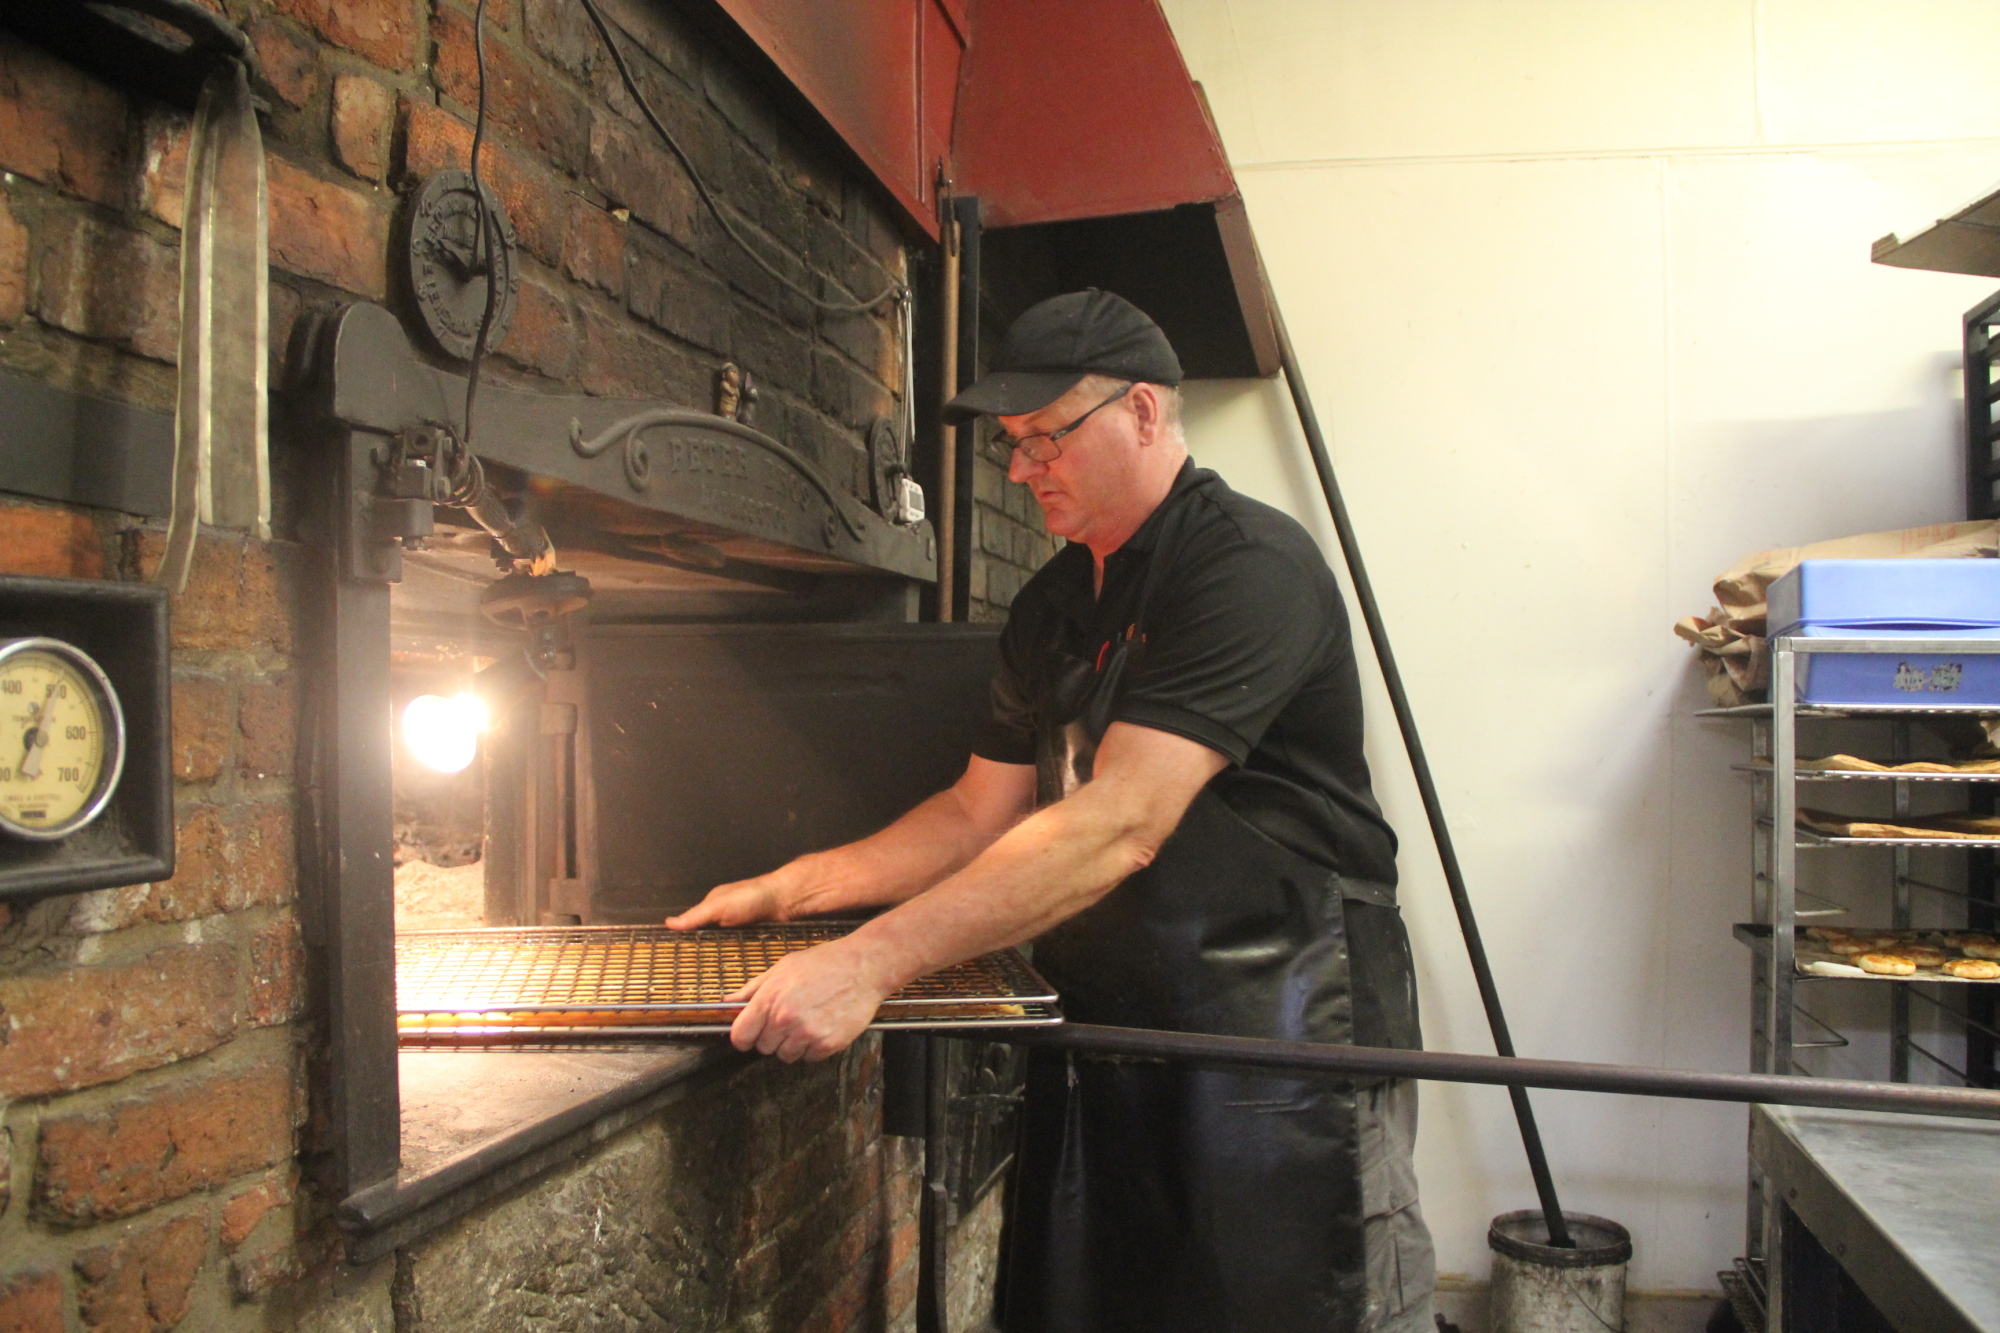 A toasty treat: Bakery owner Carl Crosby attends to pastry in the Ross Village Bakery